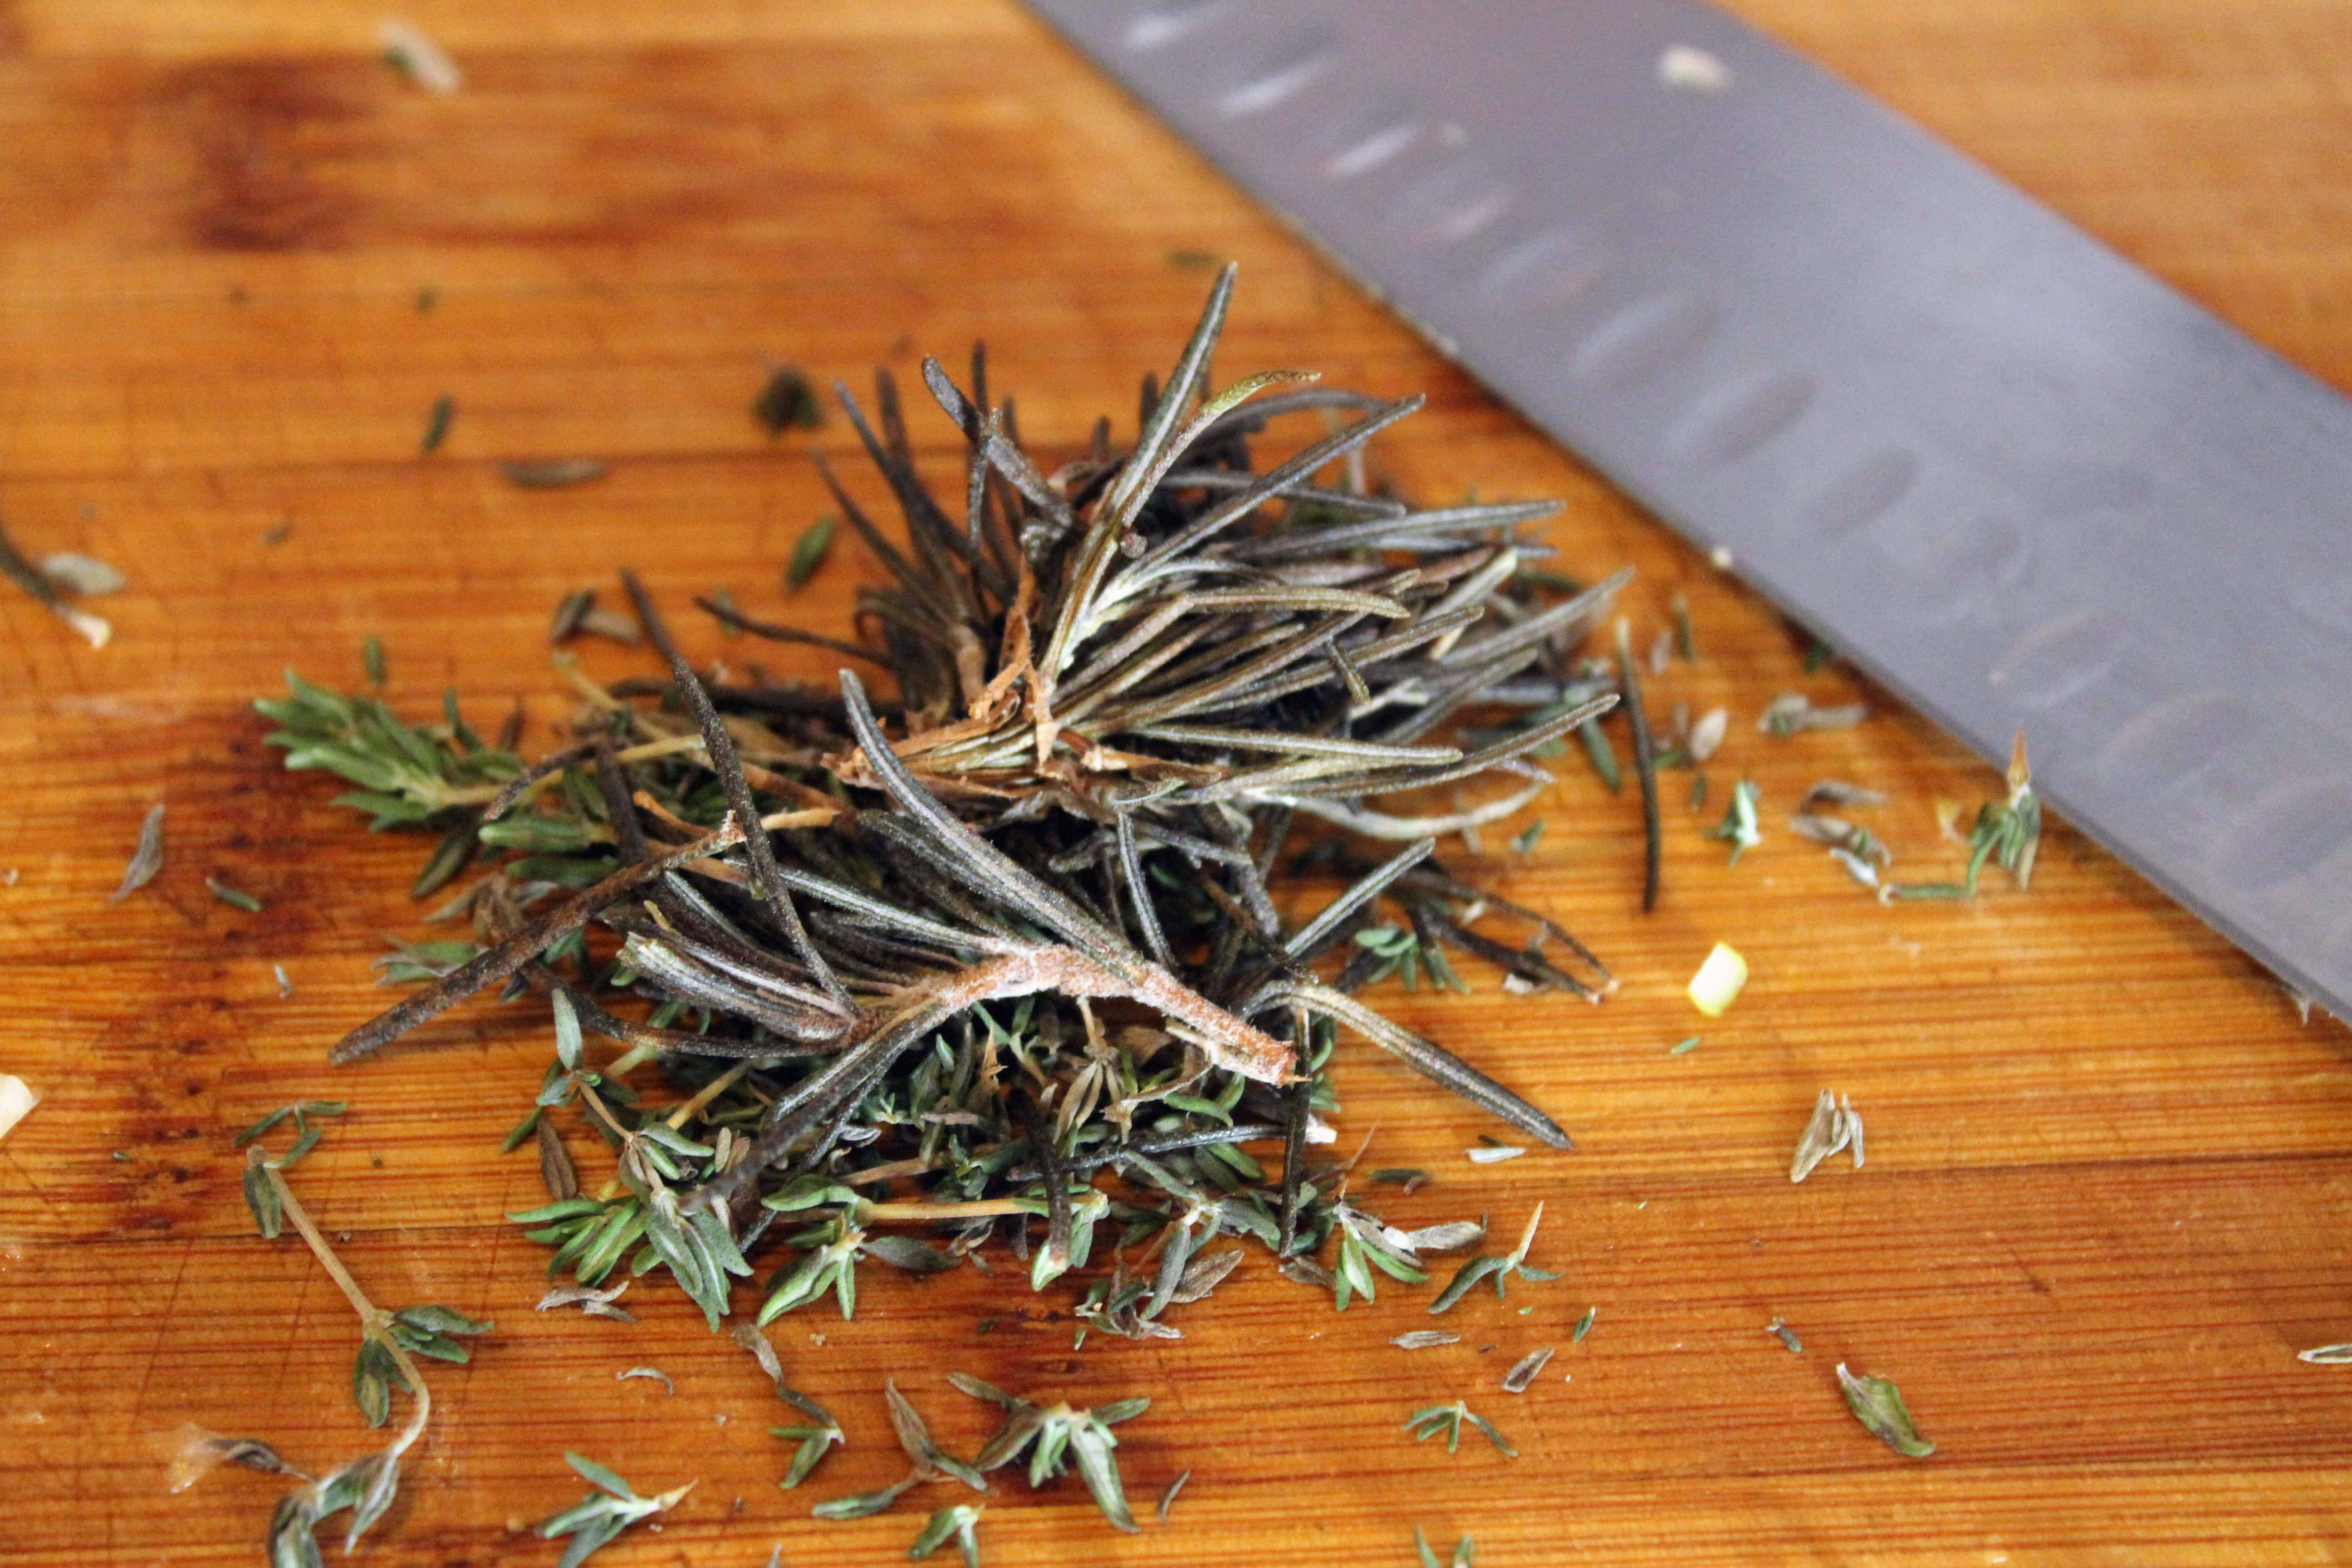 Strip thyme and rosemary from stems